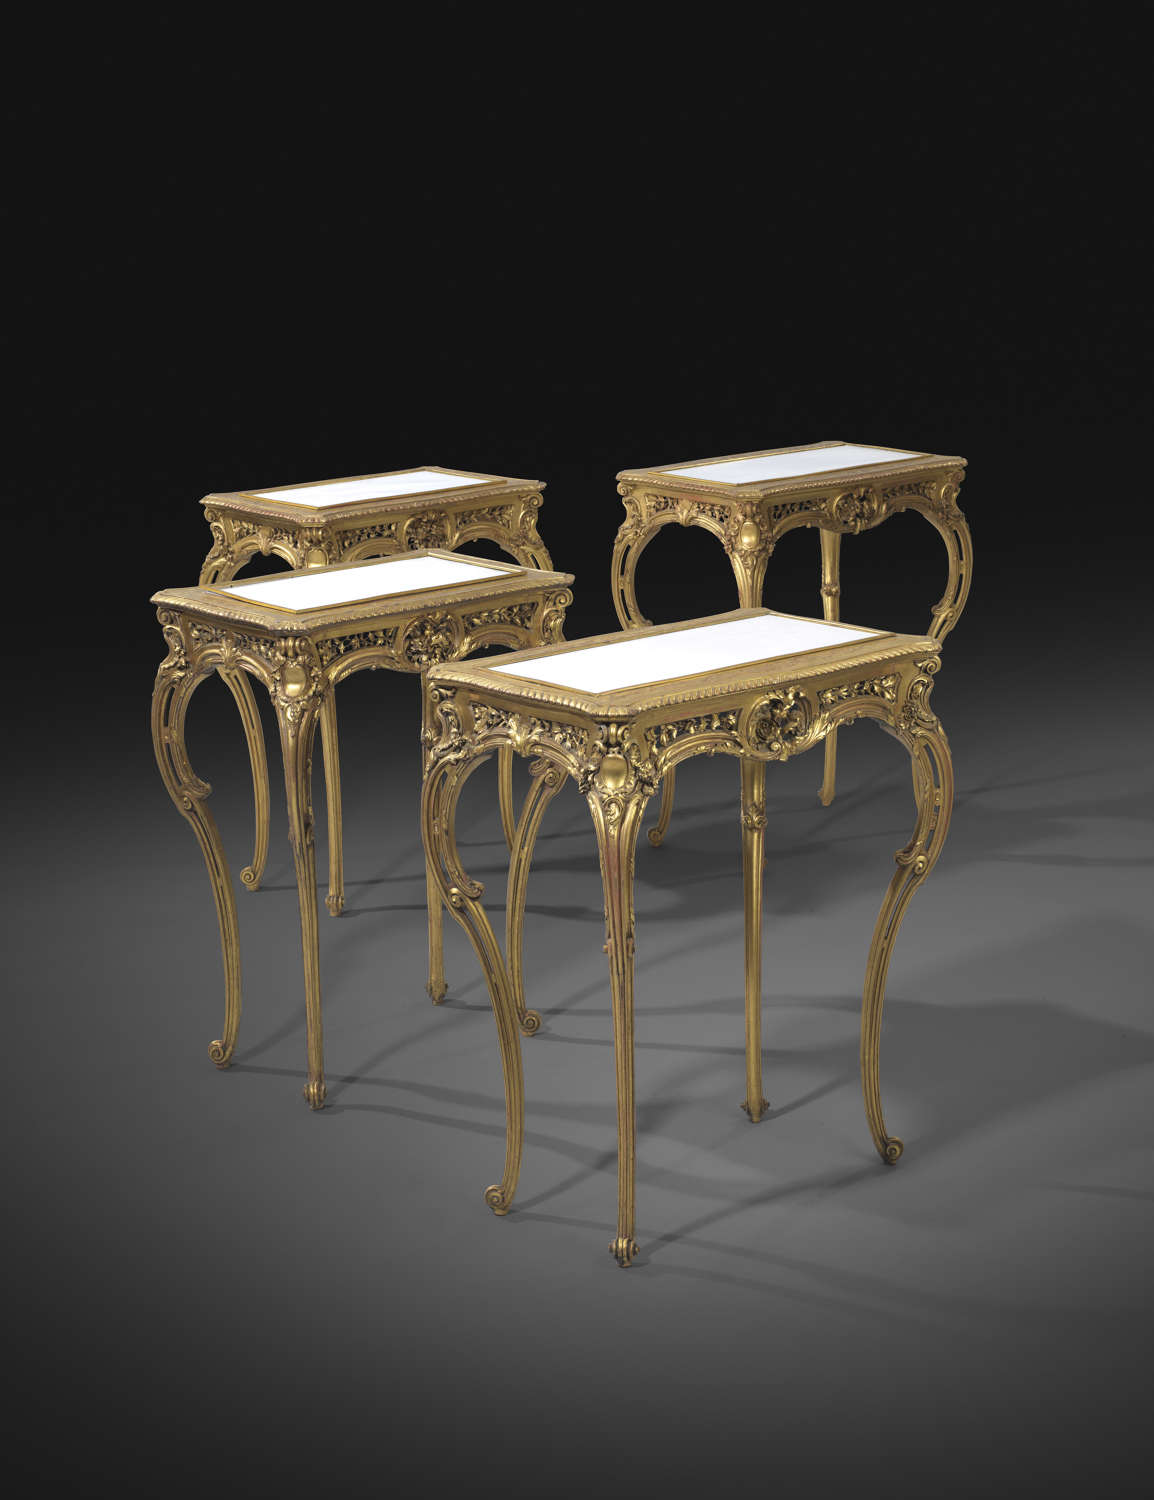 An Important set of 4 Giltwood  Side Tables attrib to Francois Linke